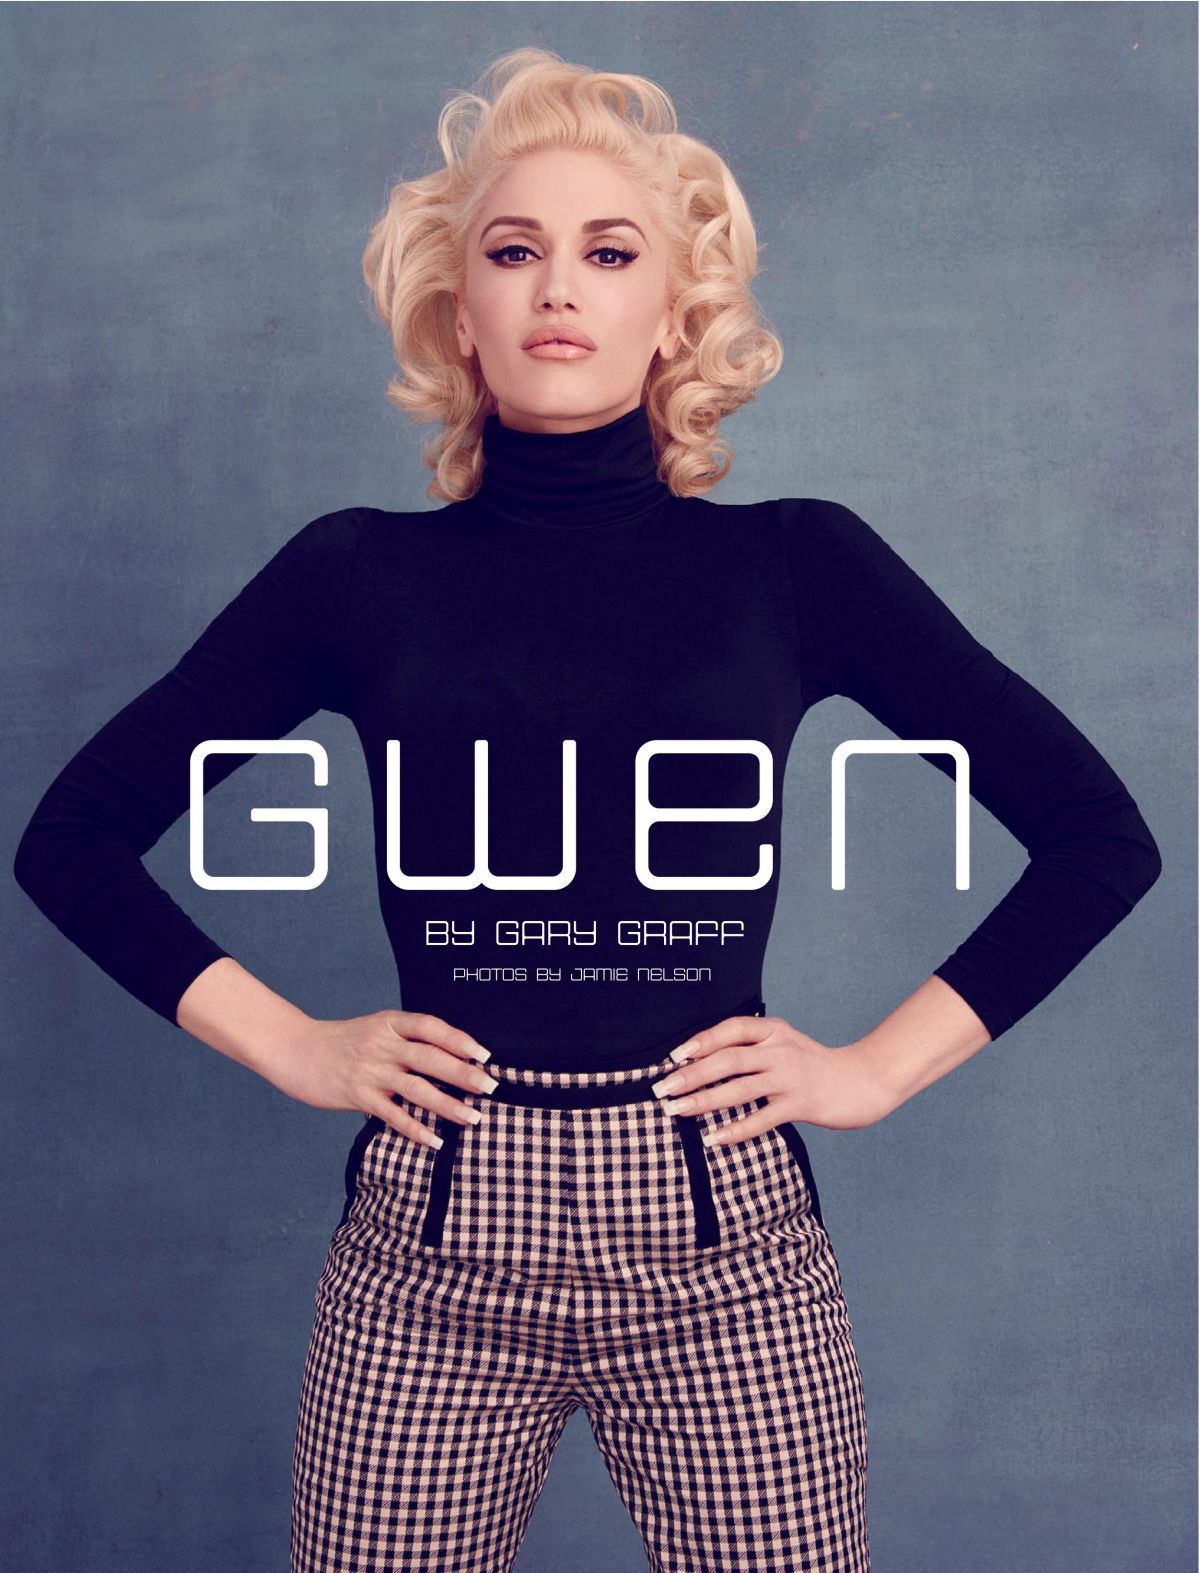 Gwen Stefani Photo Shoot for Music Connection Magazine September 2016 Issue  - HD Photos